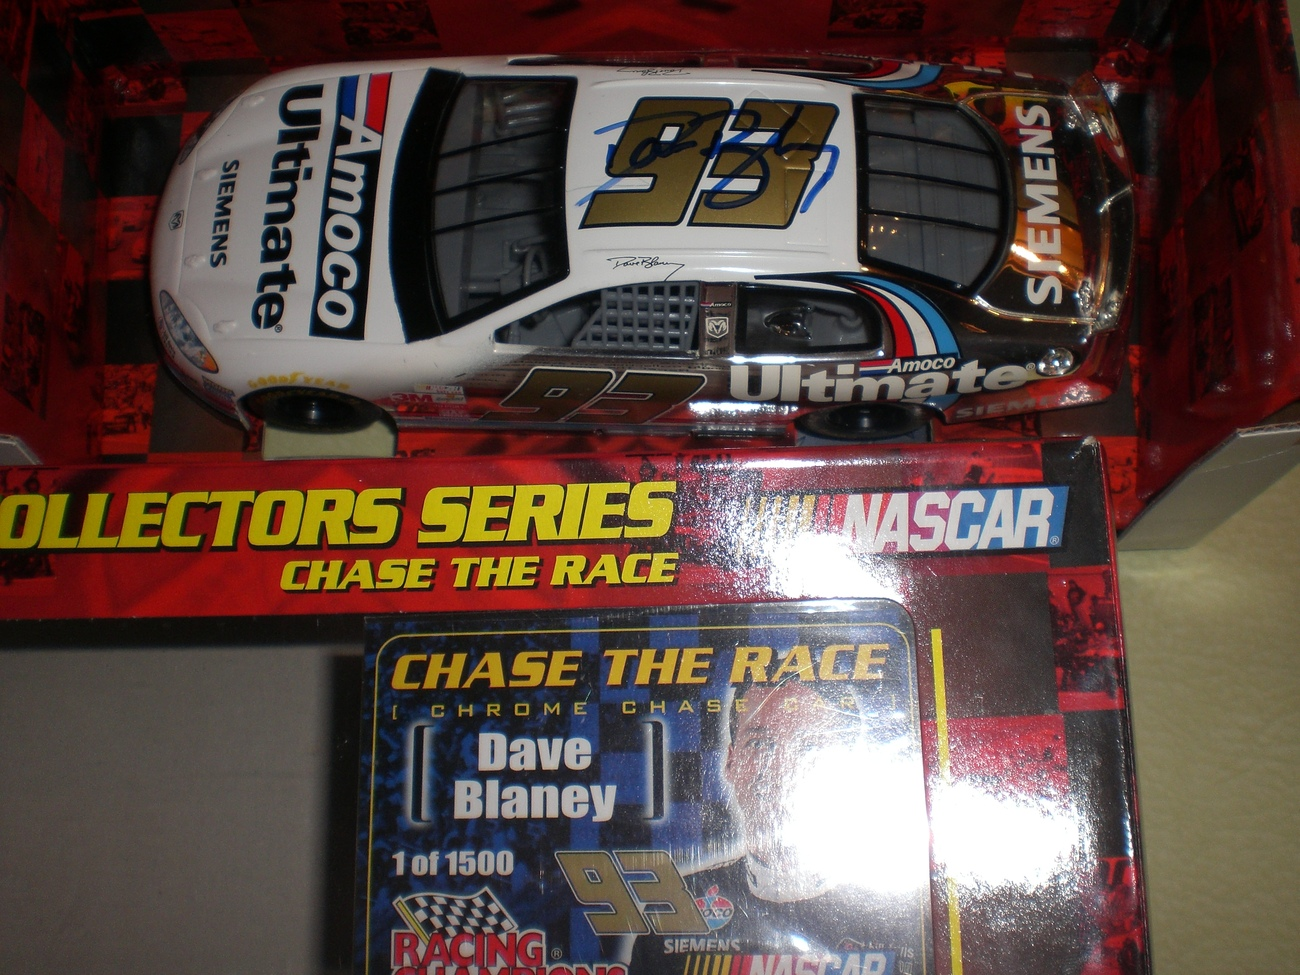 Dave Blaney SIGNED 1/24 Nascar 2 Chase diecast car LOT image 3